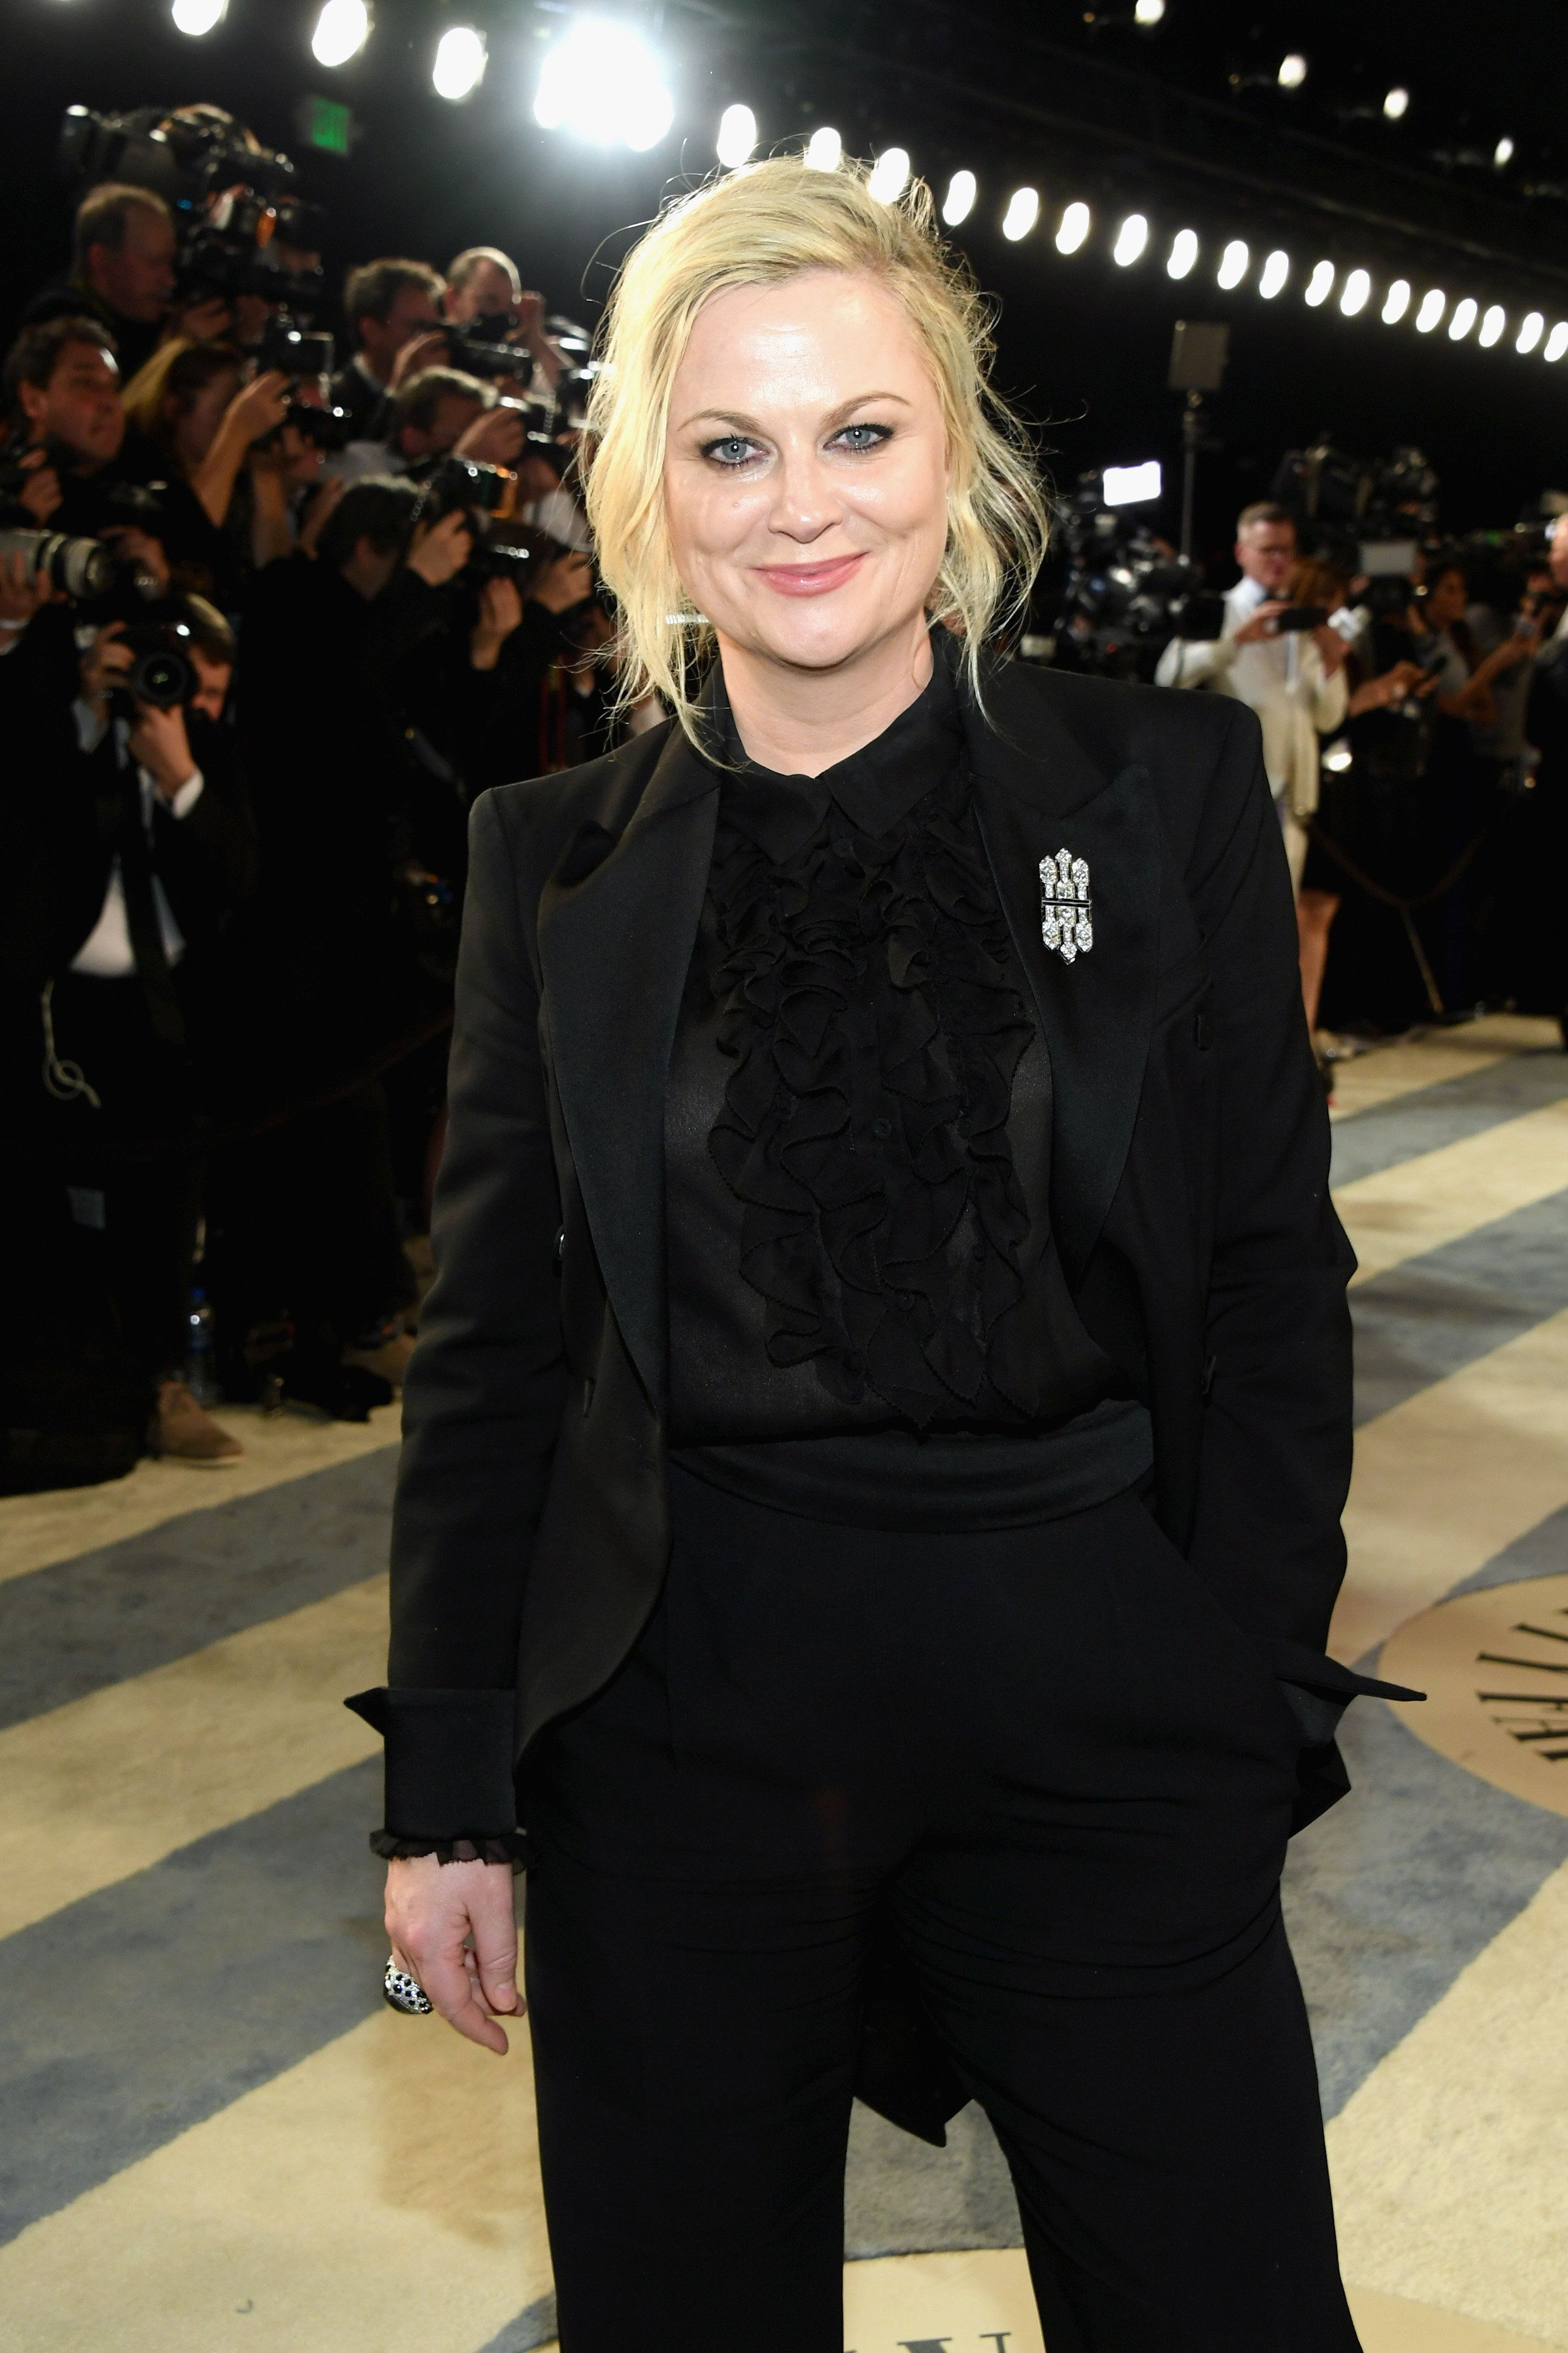 BEVERLY HILLS, CA - FEBRUARY 24:  Amy Poehler attends the 2019 Vanity Fair Oscar Party hosted by Radhika Jones at Wallis Annenberg Center for the Performing Arts on February 24, 2019 in Beverly Hills, California.  (Photo by Mike Coppola/VF19/Getty Images for VF)